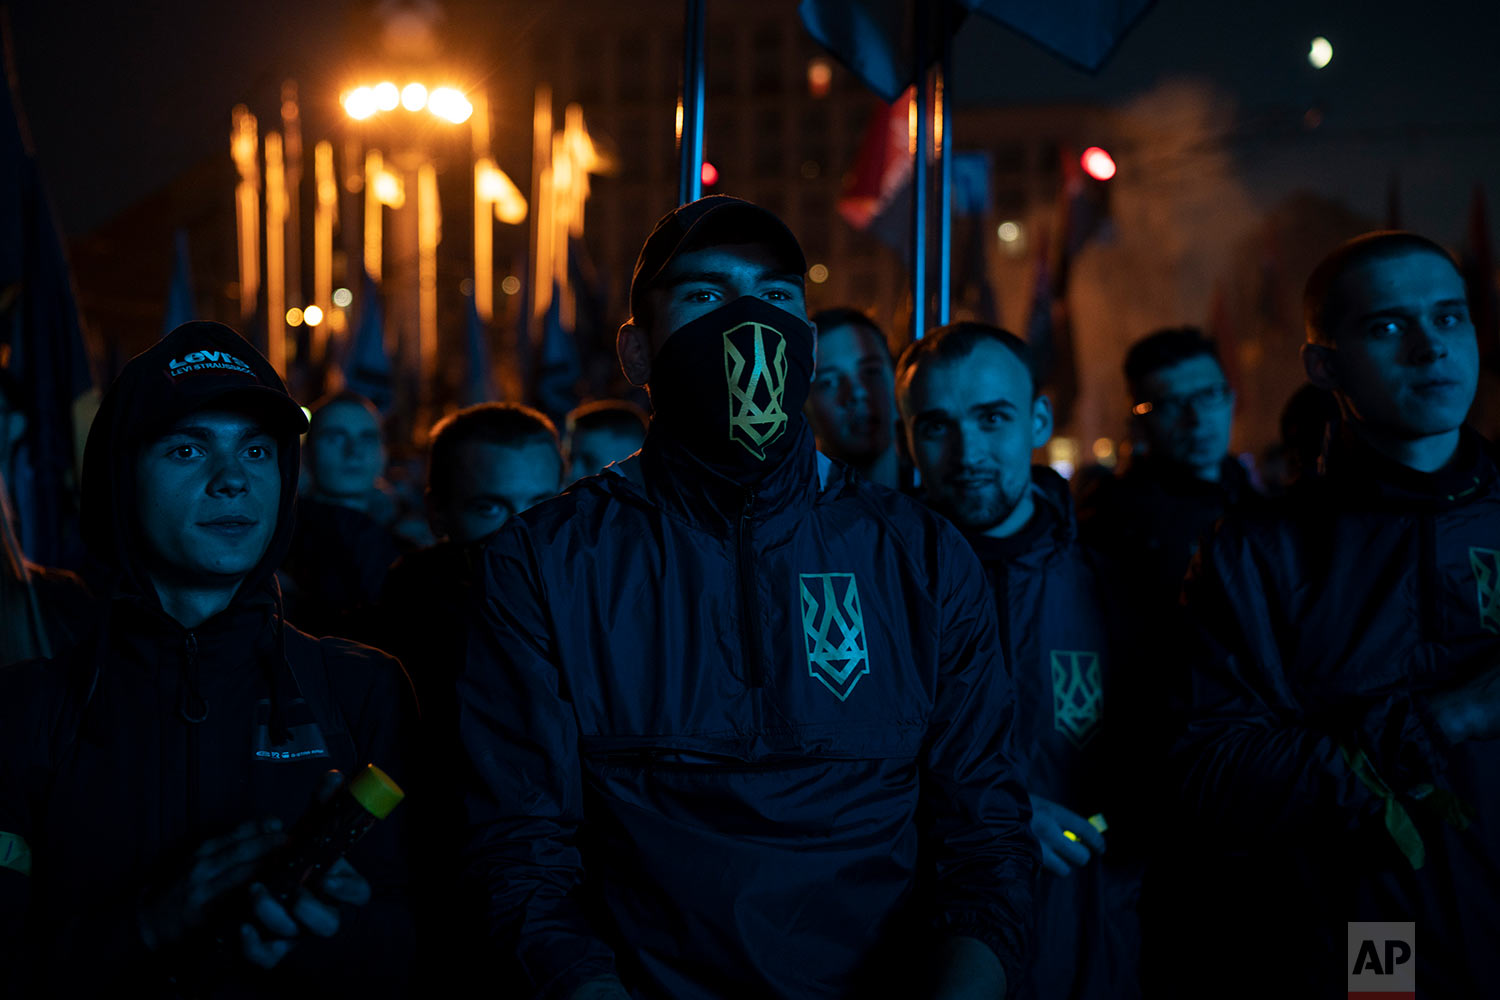 Members of nationalist movements attend a rally marking Defender of Ukraine Day in Kiev, Ukraine, Oct. 14, 2018. (AP Photo/Felipe Dana)